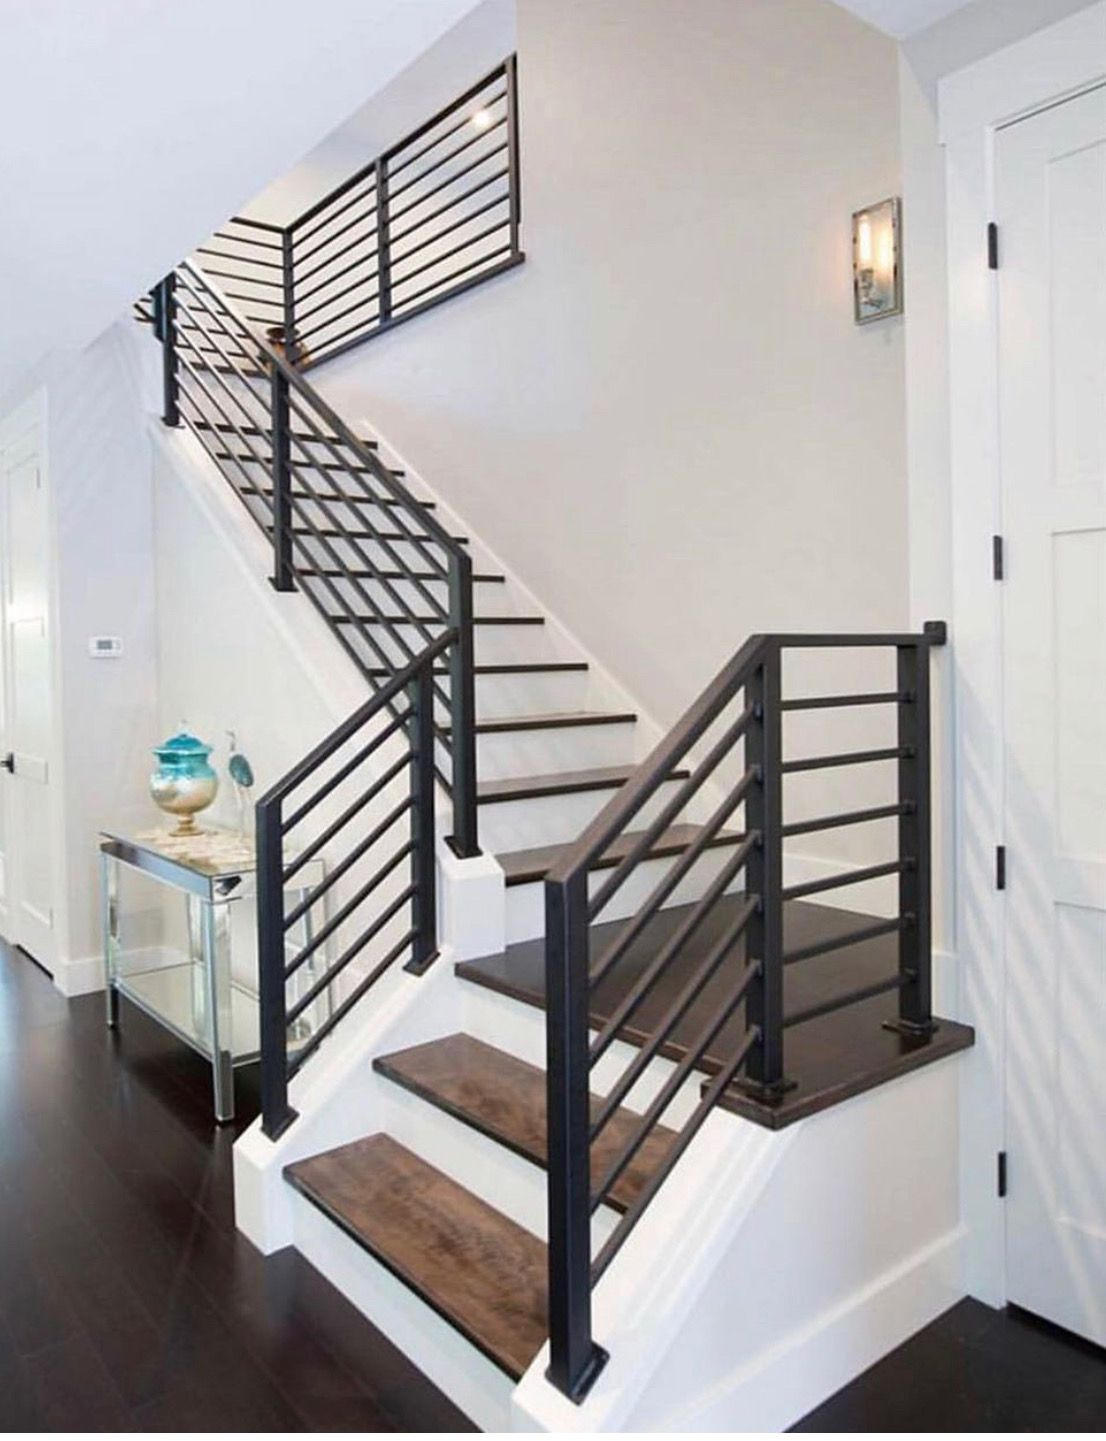 Love The Metal Railing Stairs Design Modern House Stairs   Modern Stair Railings Interior   Minimalist   Luxury   Straight   Wall Mounted   Brushed Nickel